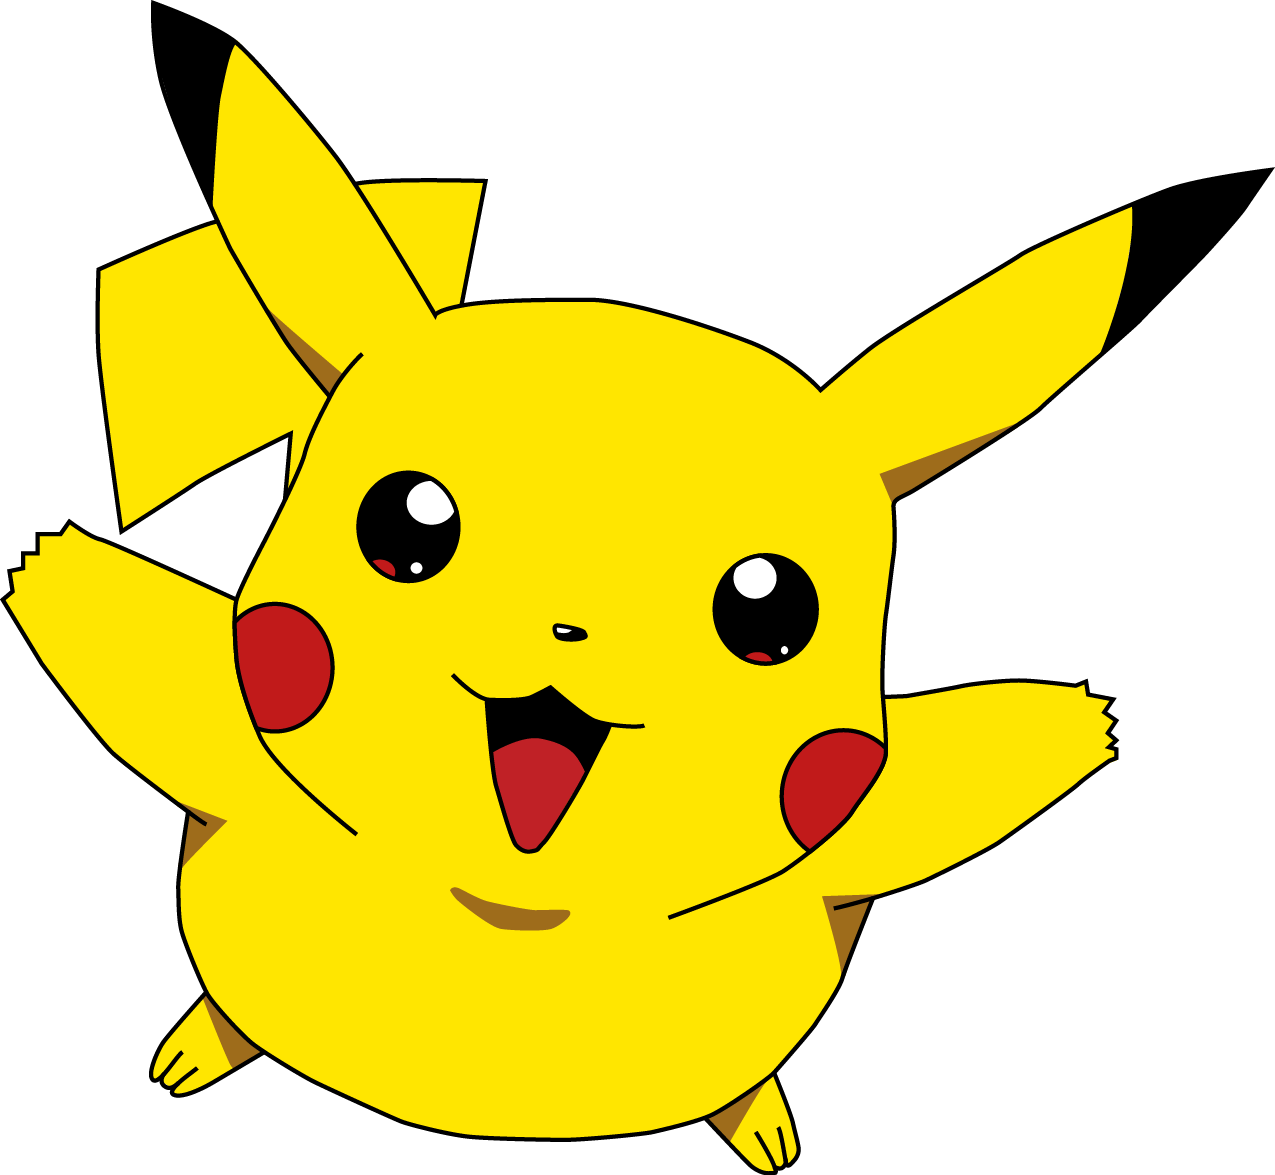 Image - Pikachu cute happy jump.png - Legends of the Multi ...